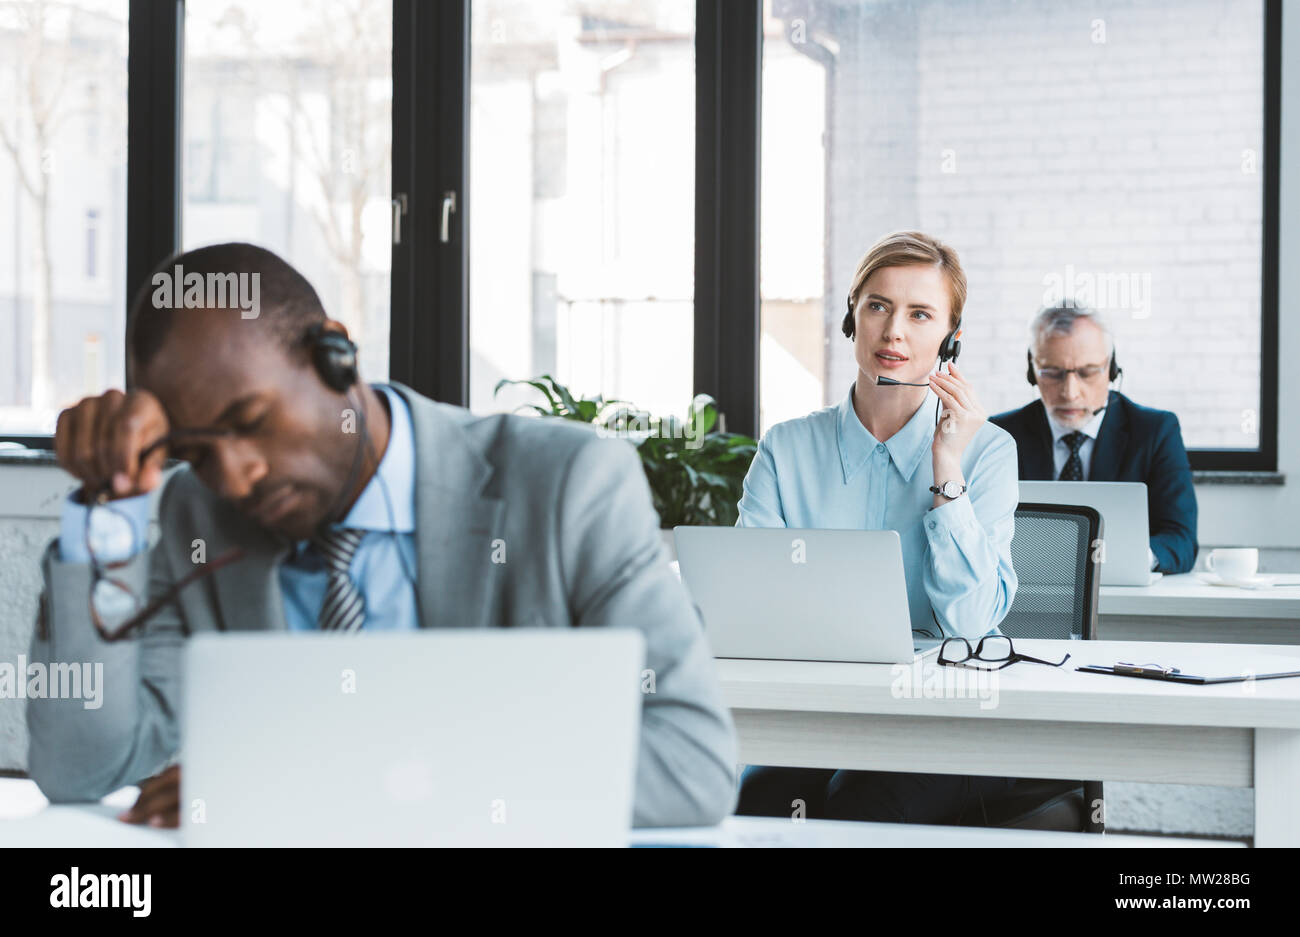 three multiethnic business people in headsets working with laptops in modern office - Stock Image